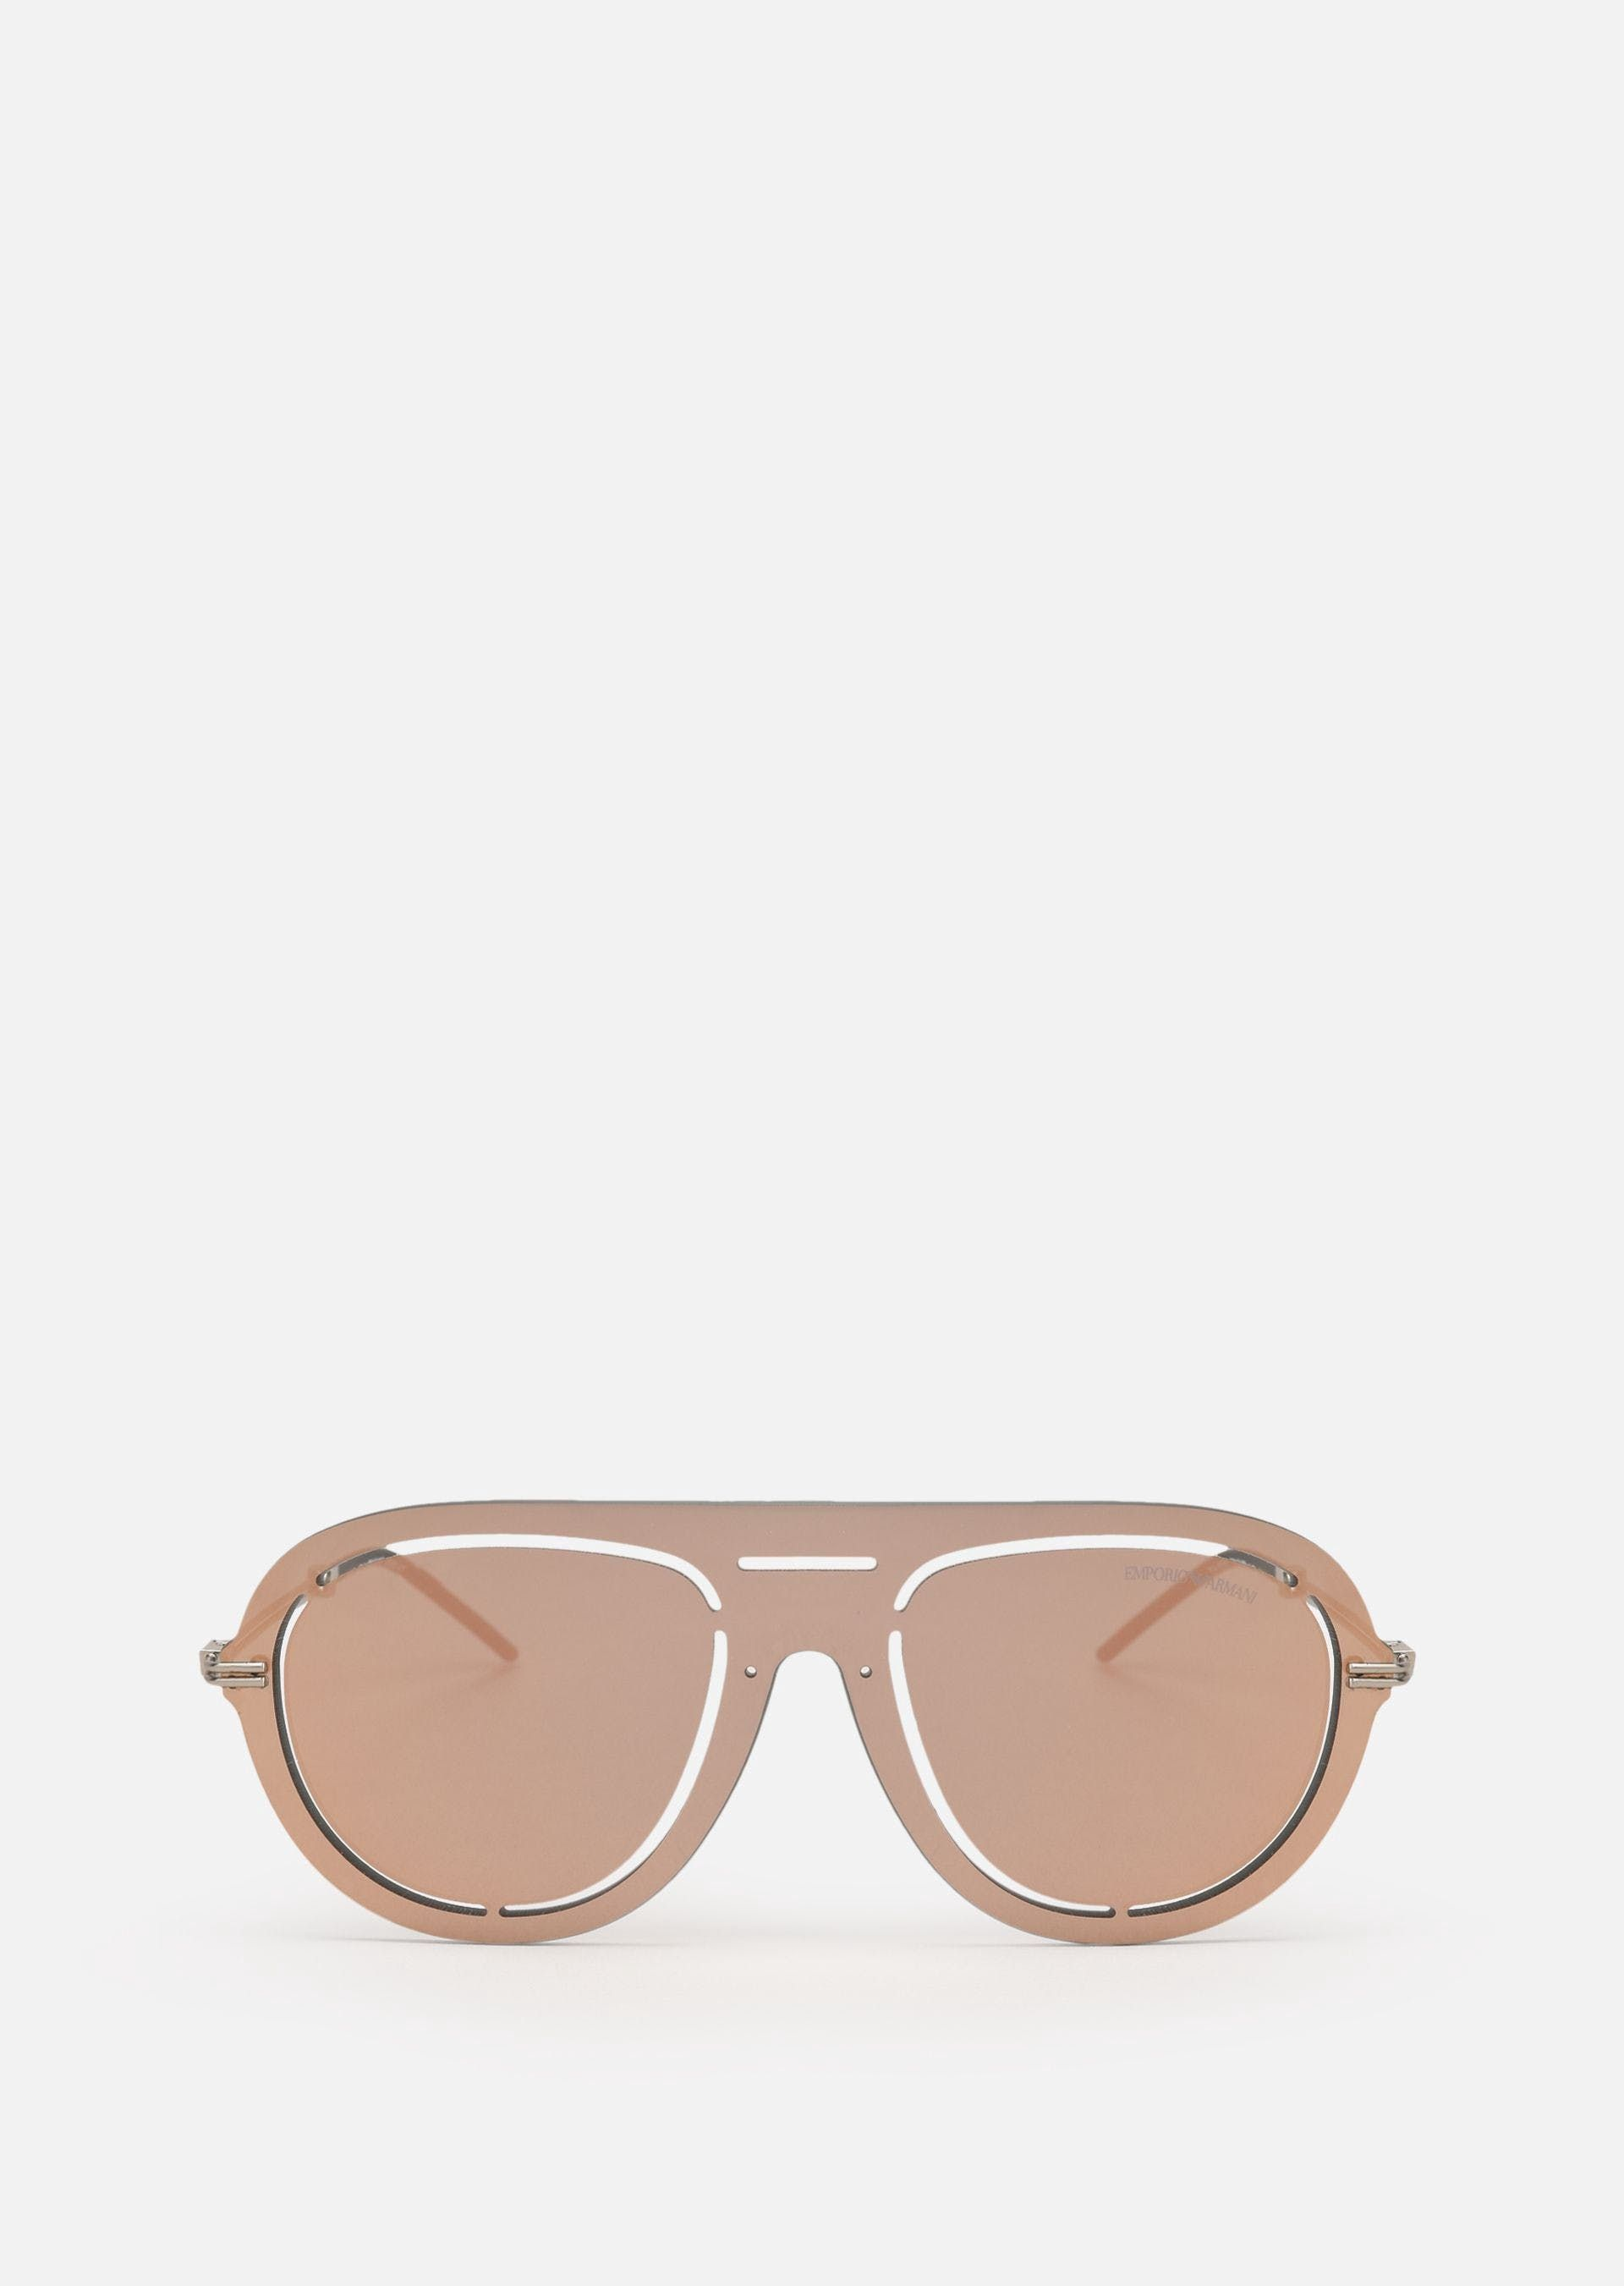 897f3995c0 LASER-CUT SHIELD SUNGLASSES by Emporio Armani | Sunglasses ...